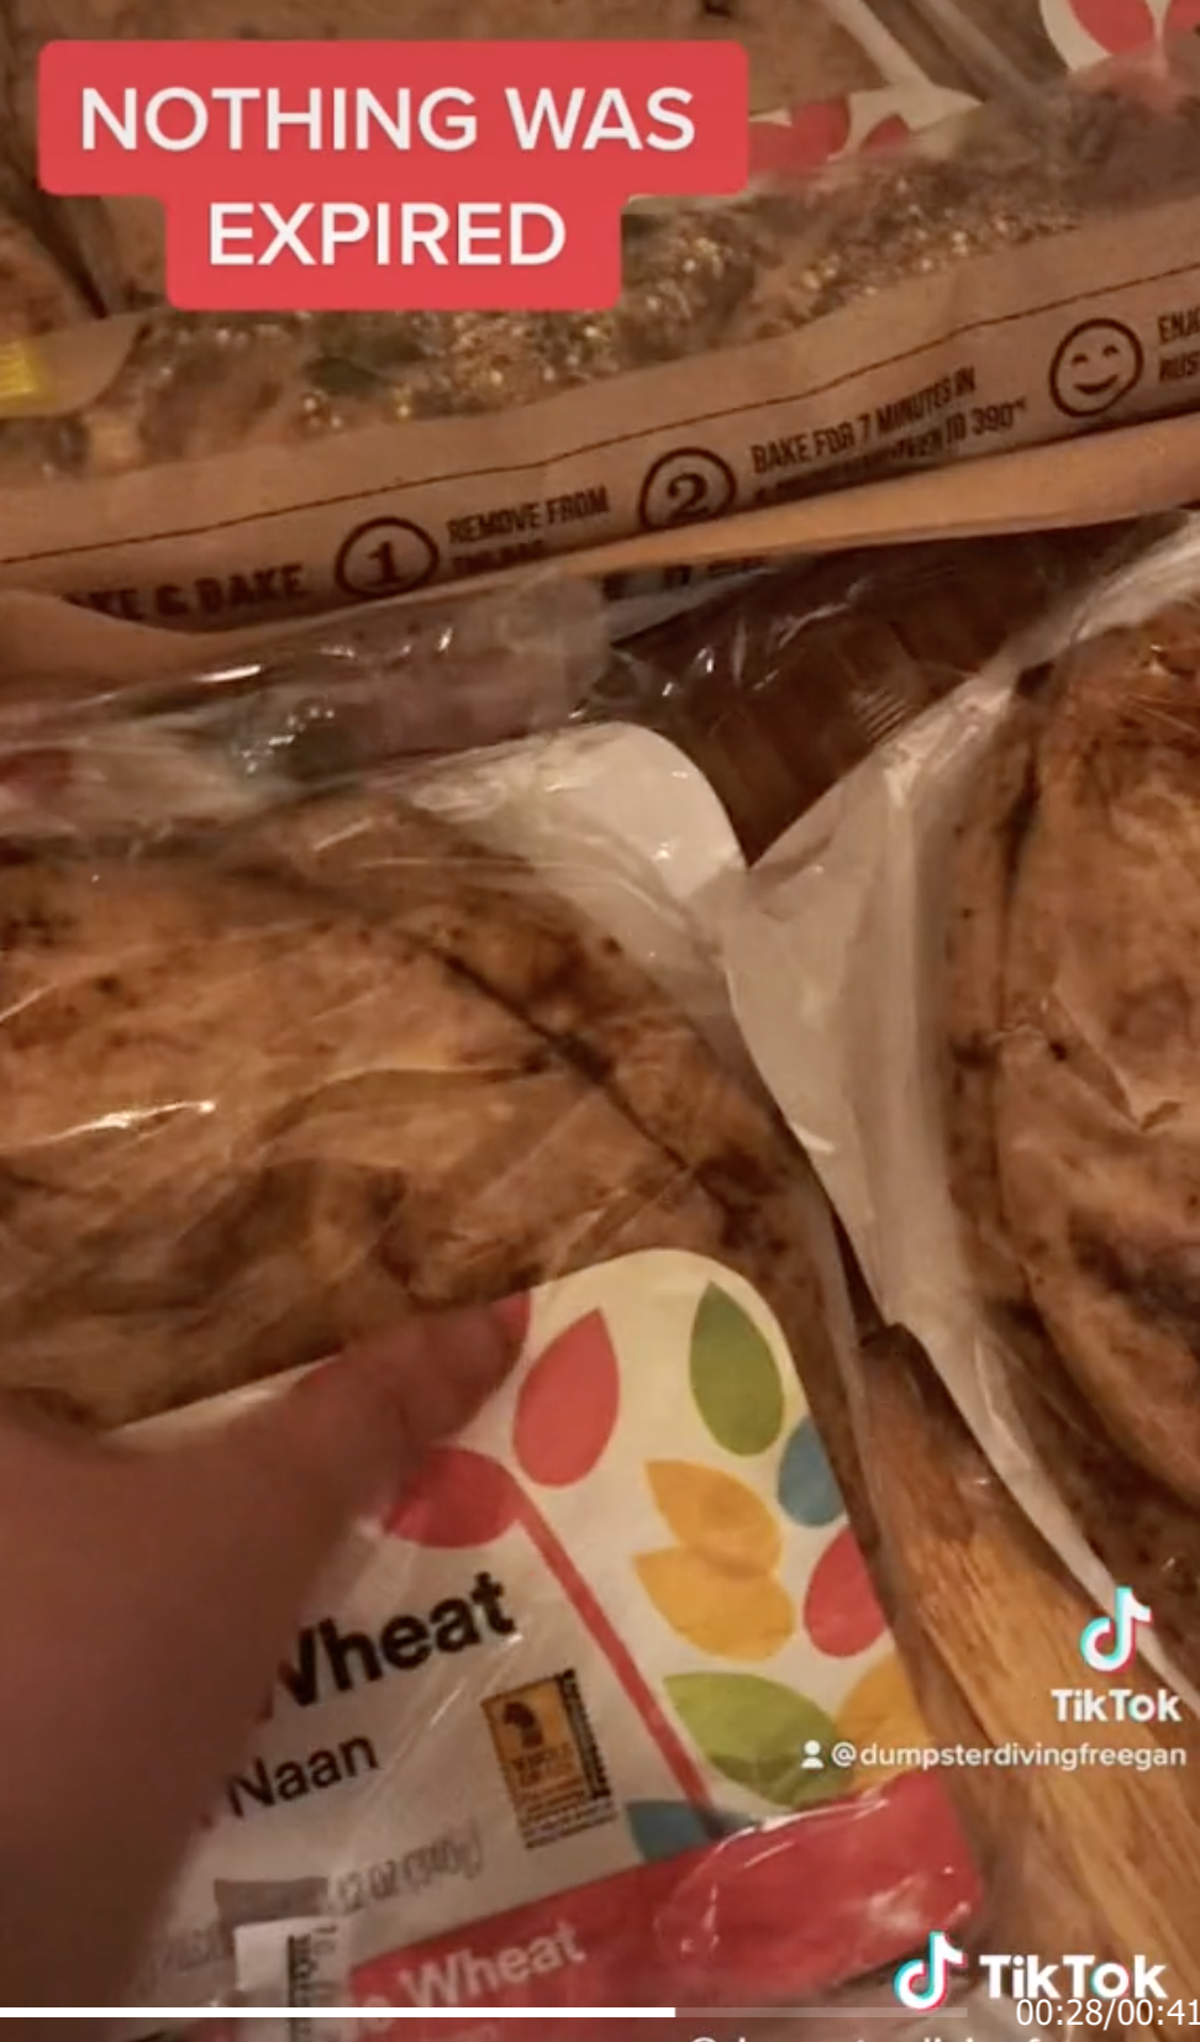 TikTok alleges huge amounts of food thrown out by Whole Foods